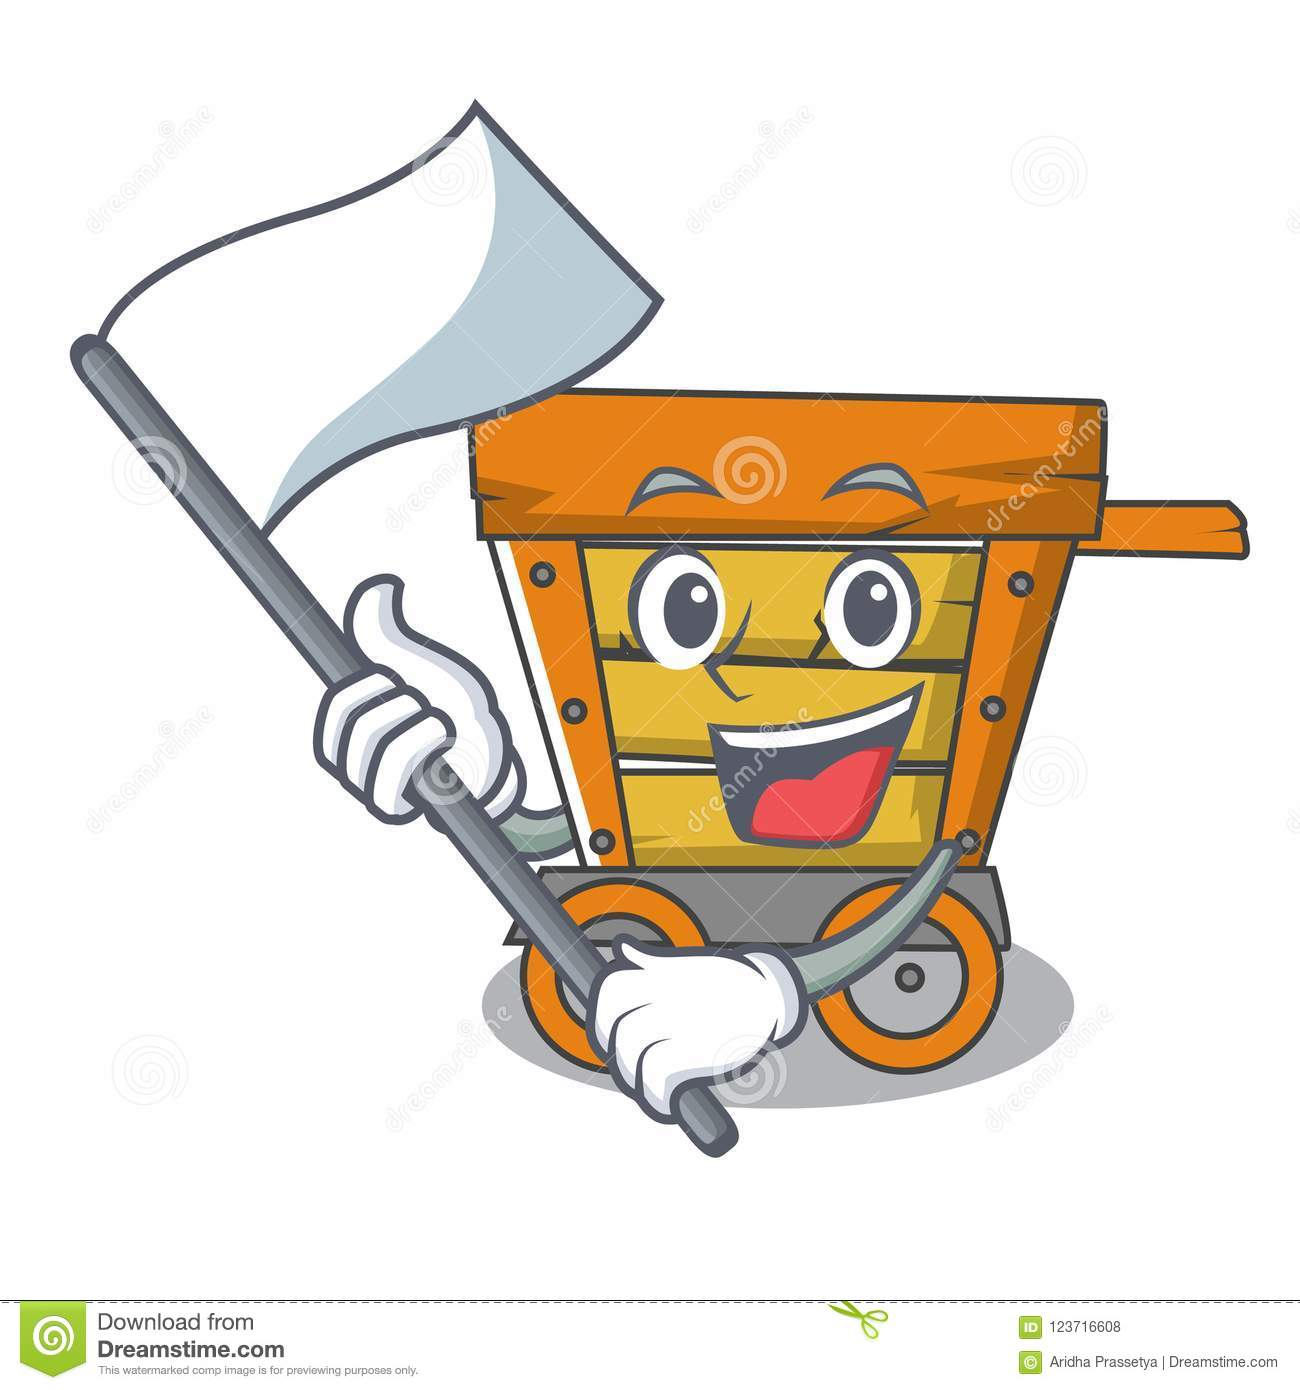 With flag wooden trolley mascot cartoon